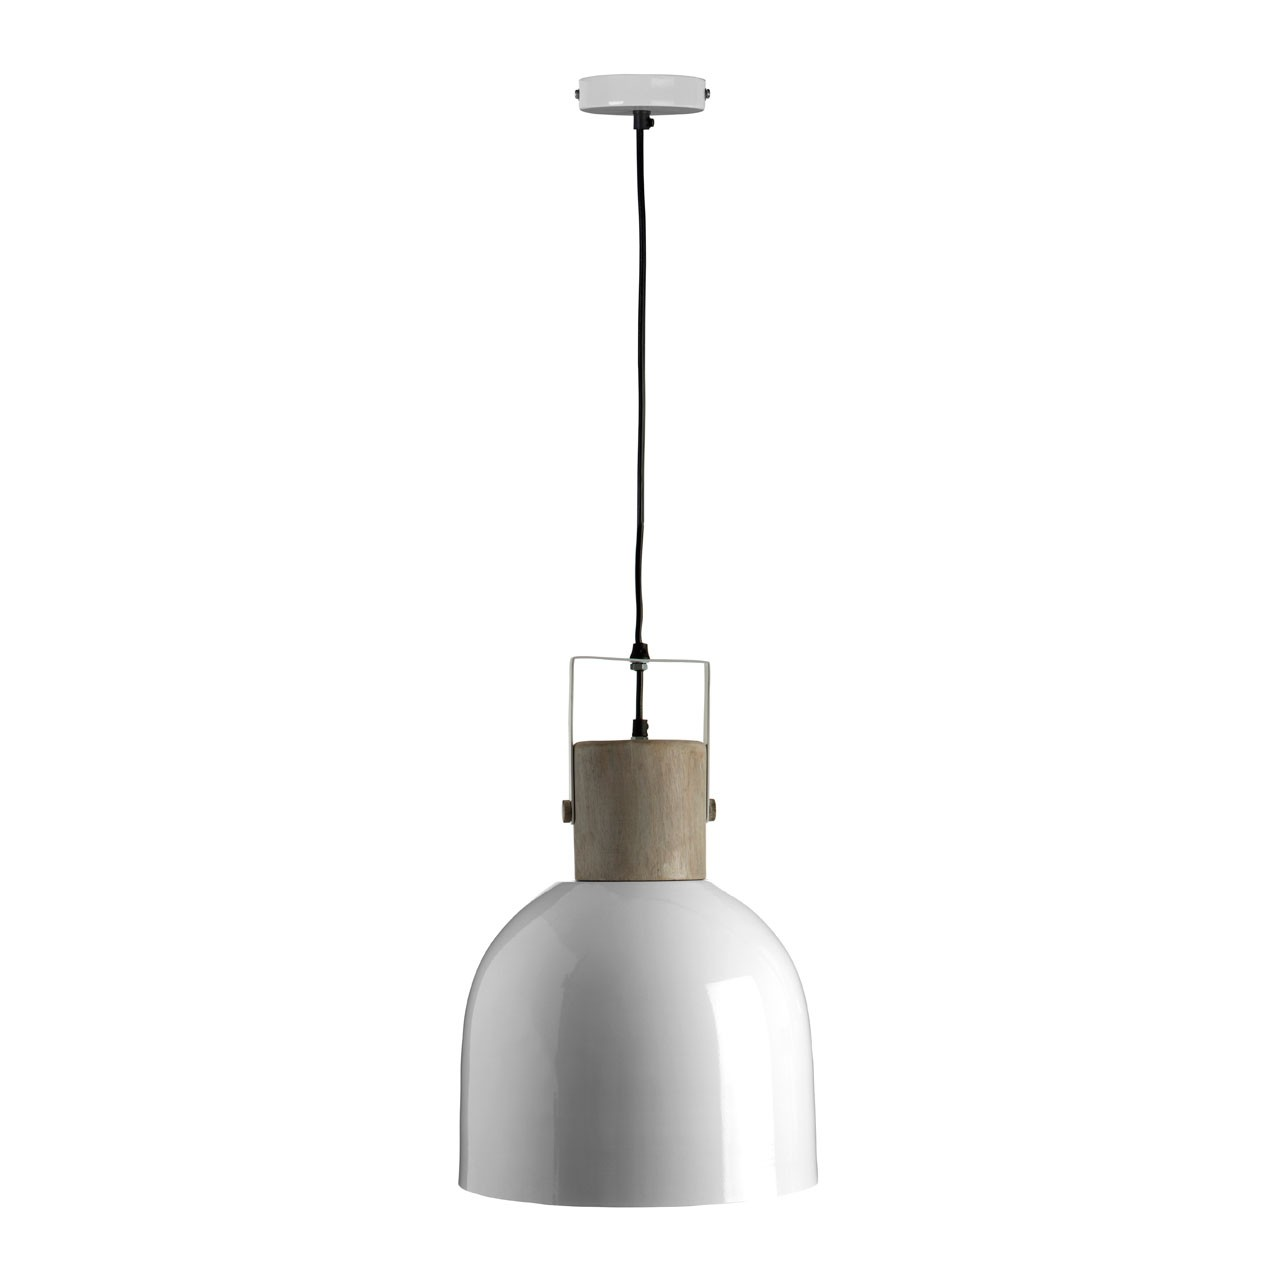 Prime Furnishing Pendant Light, Mild Steel White